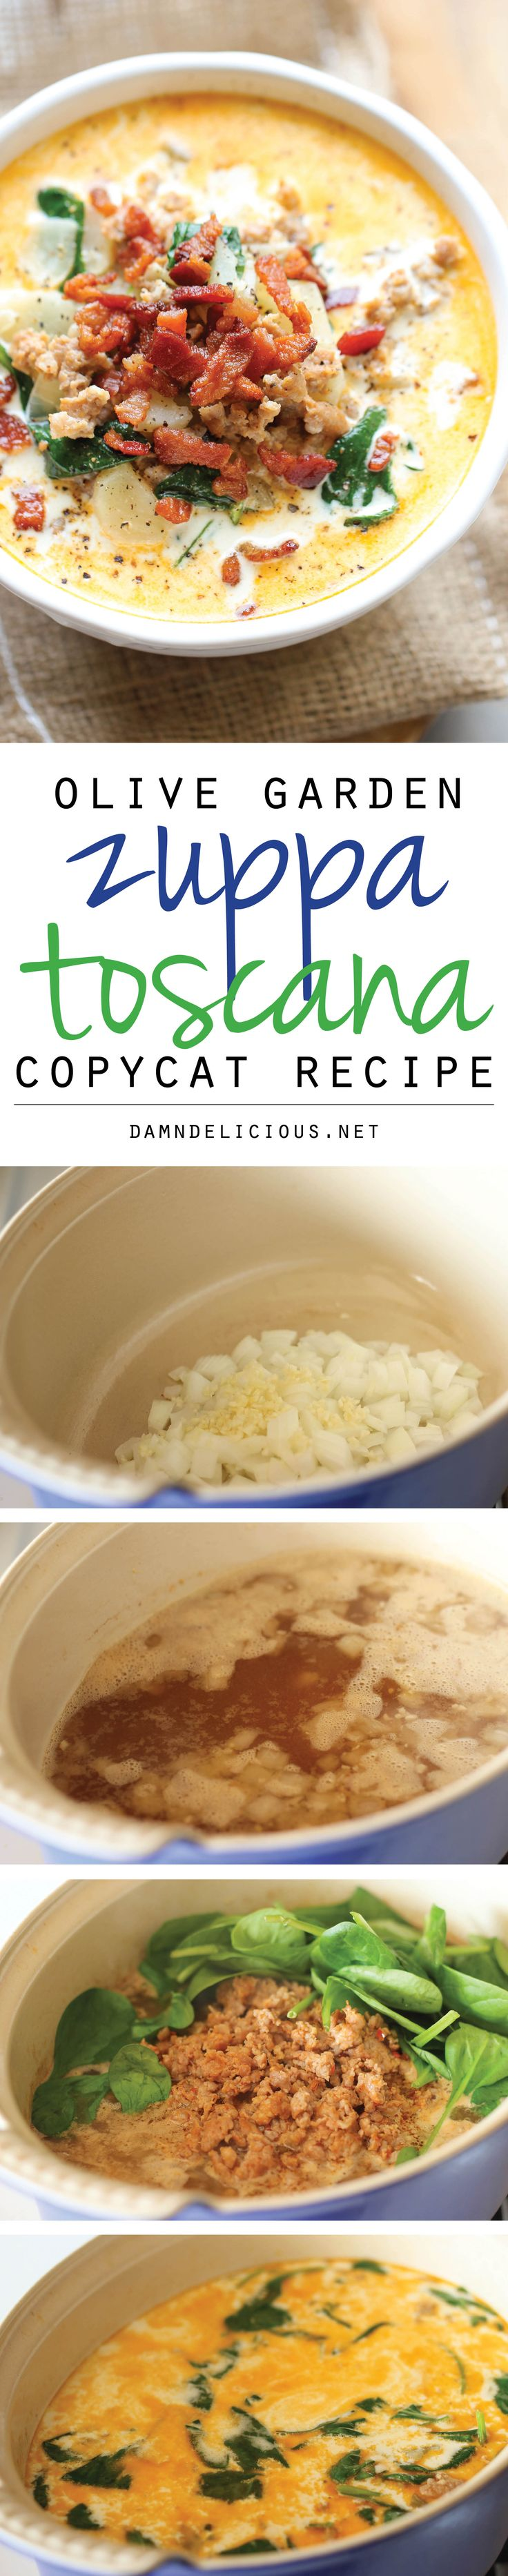 Olive Garden Zuppa Toscana Copycat Recipe - omit the potatoes for Low Carb!!